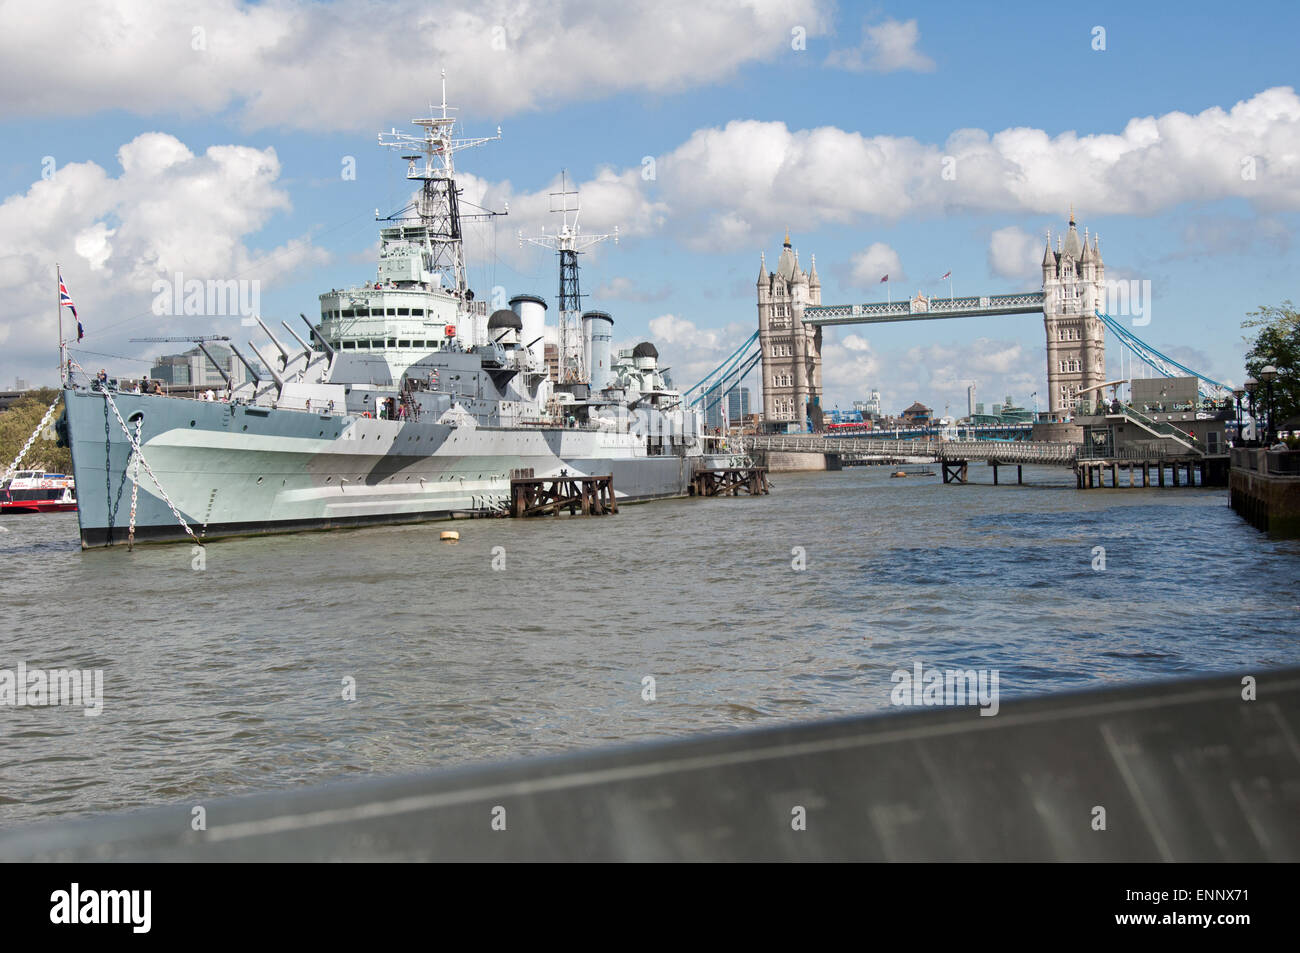 HMS Belfast Ship Museum and the Tower Bridge at the background, London, U.K. - Stock Image